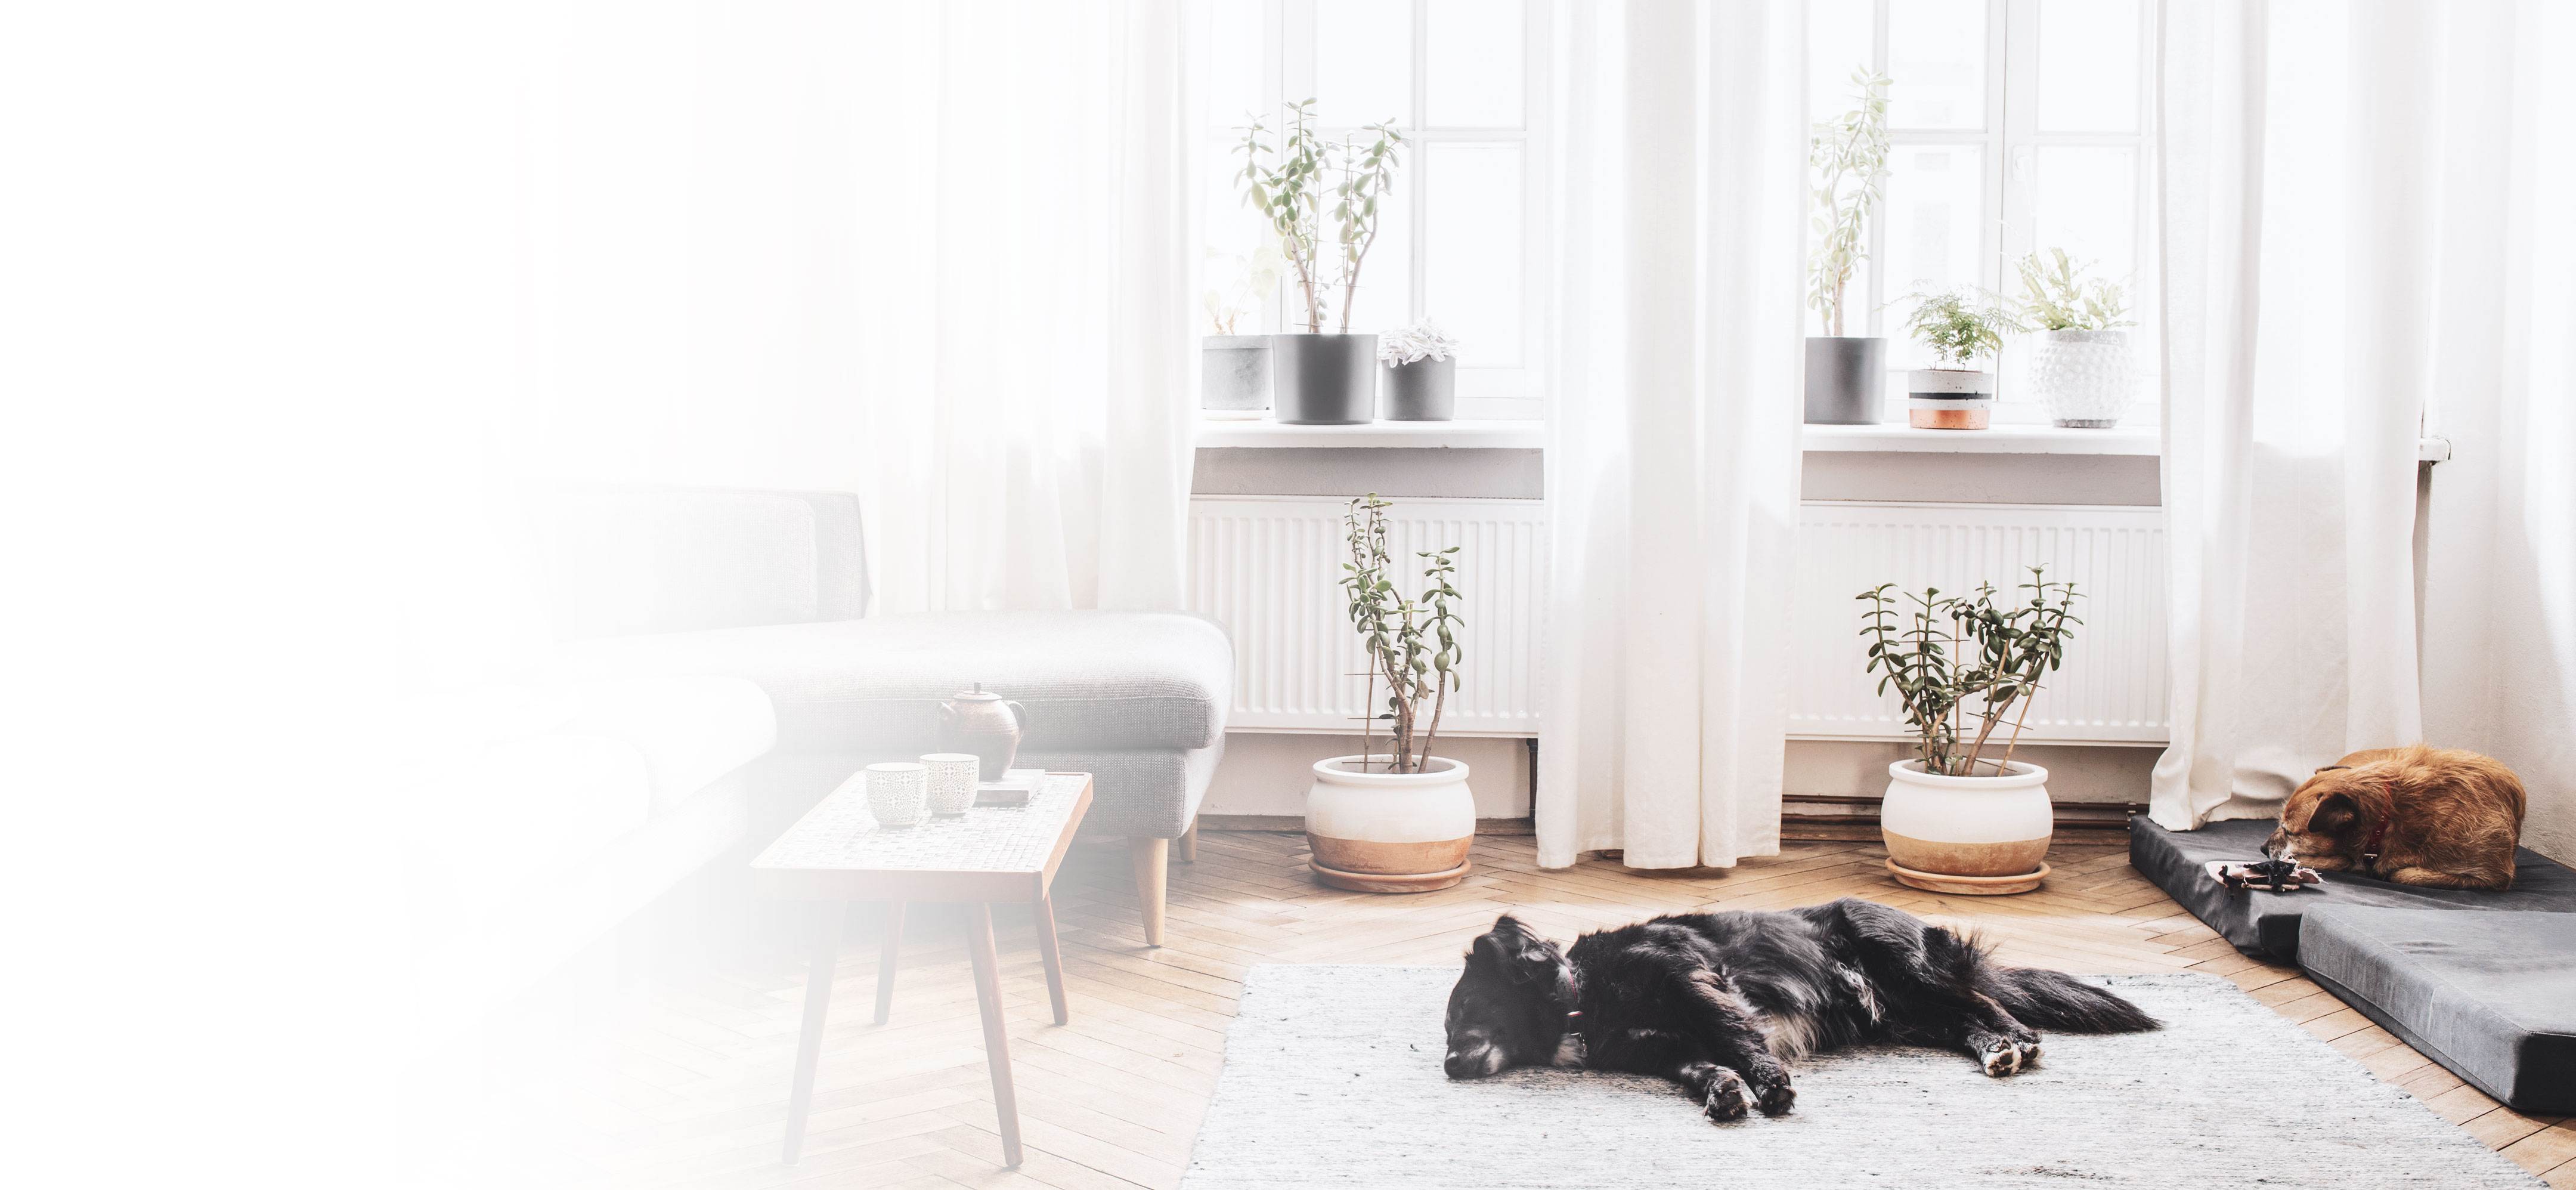 dogs resting in an apartment